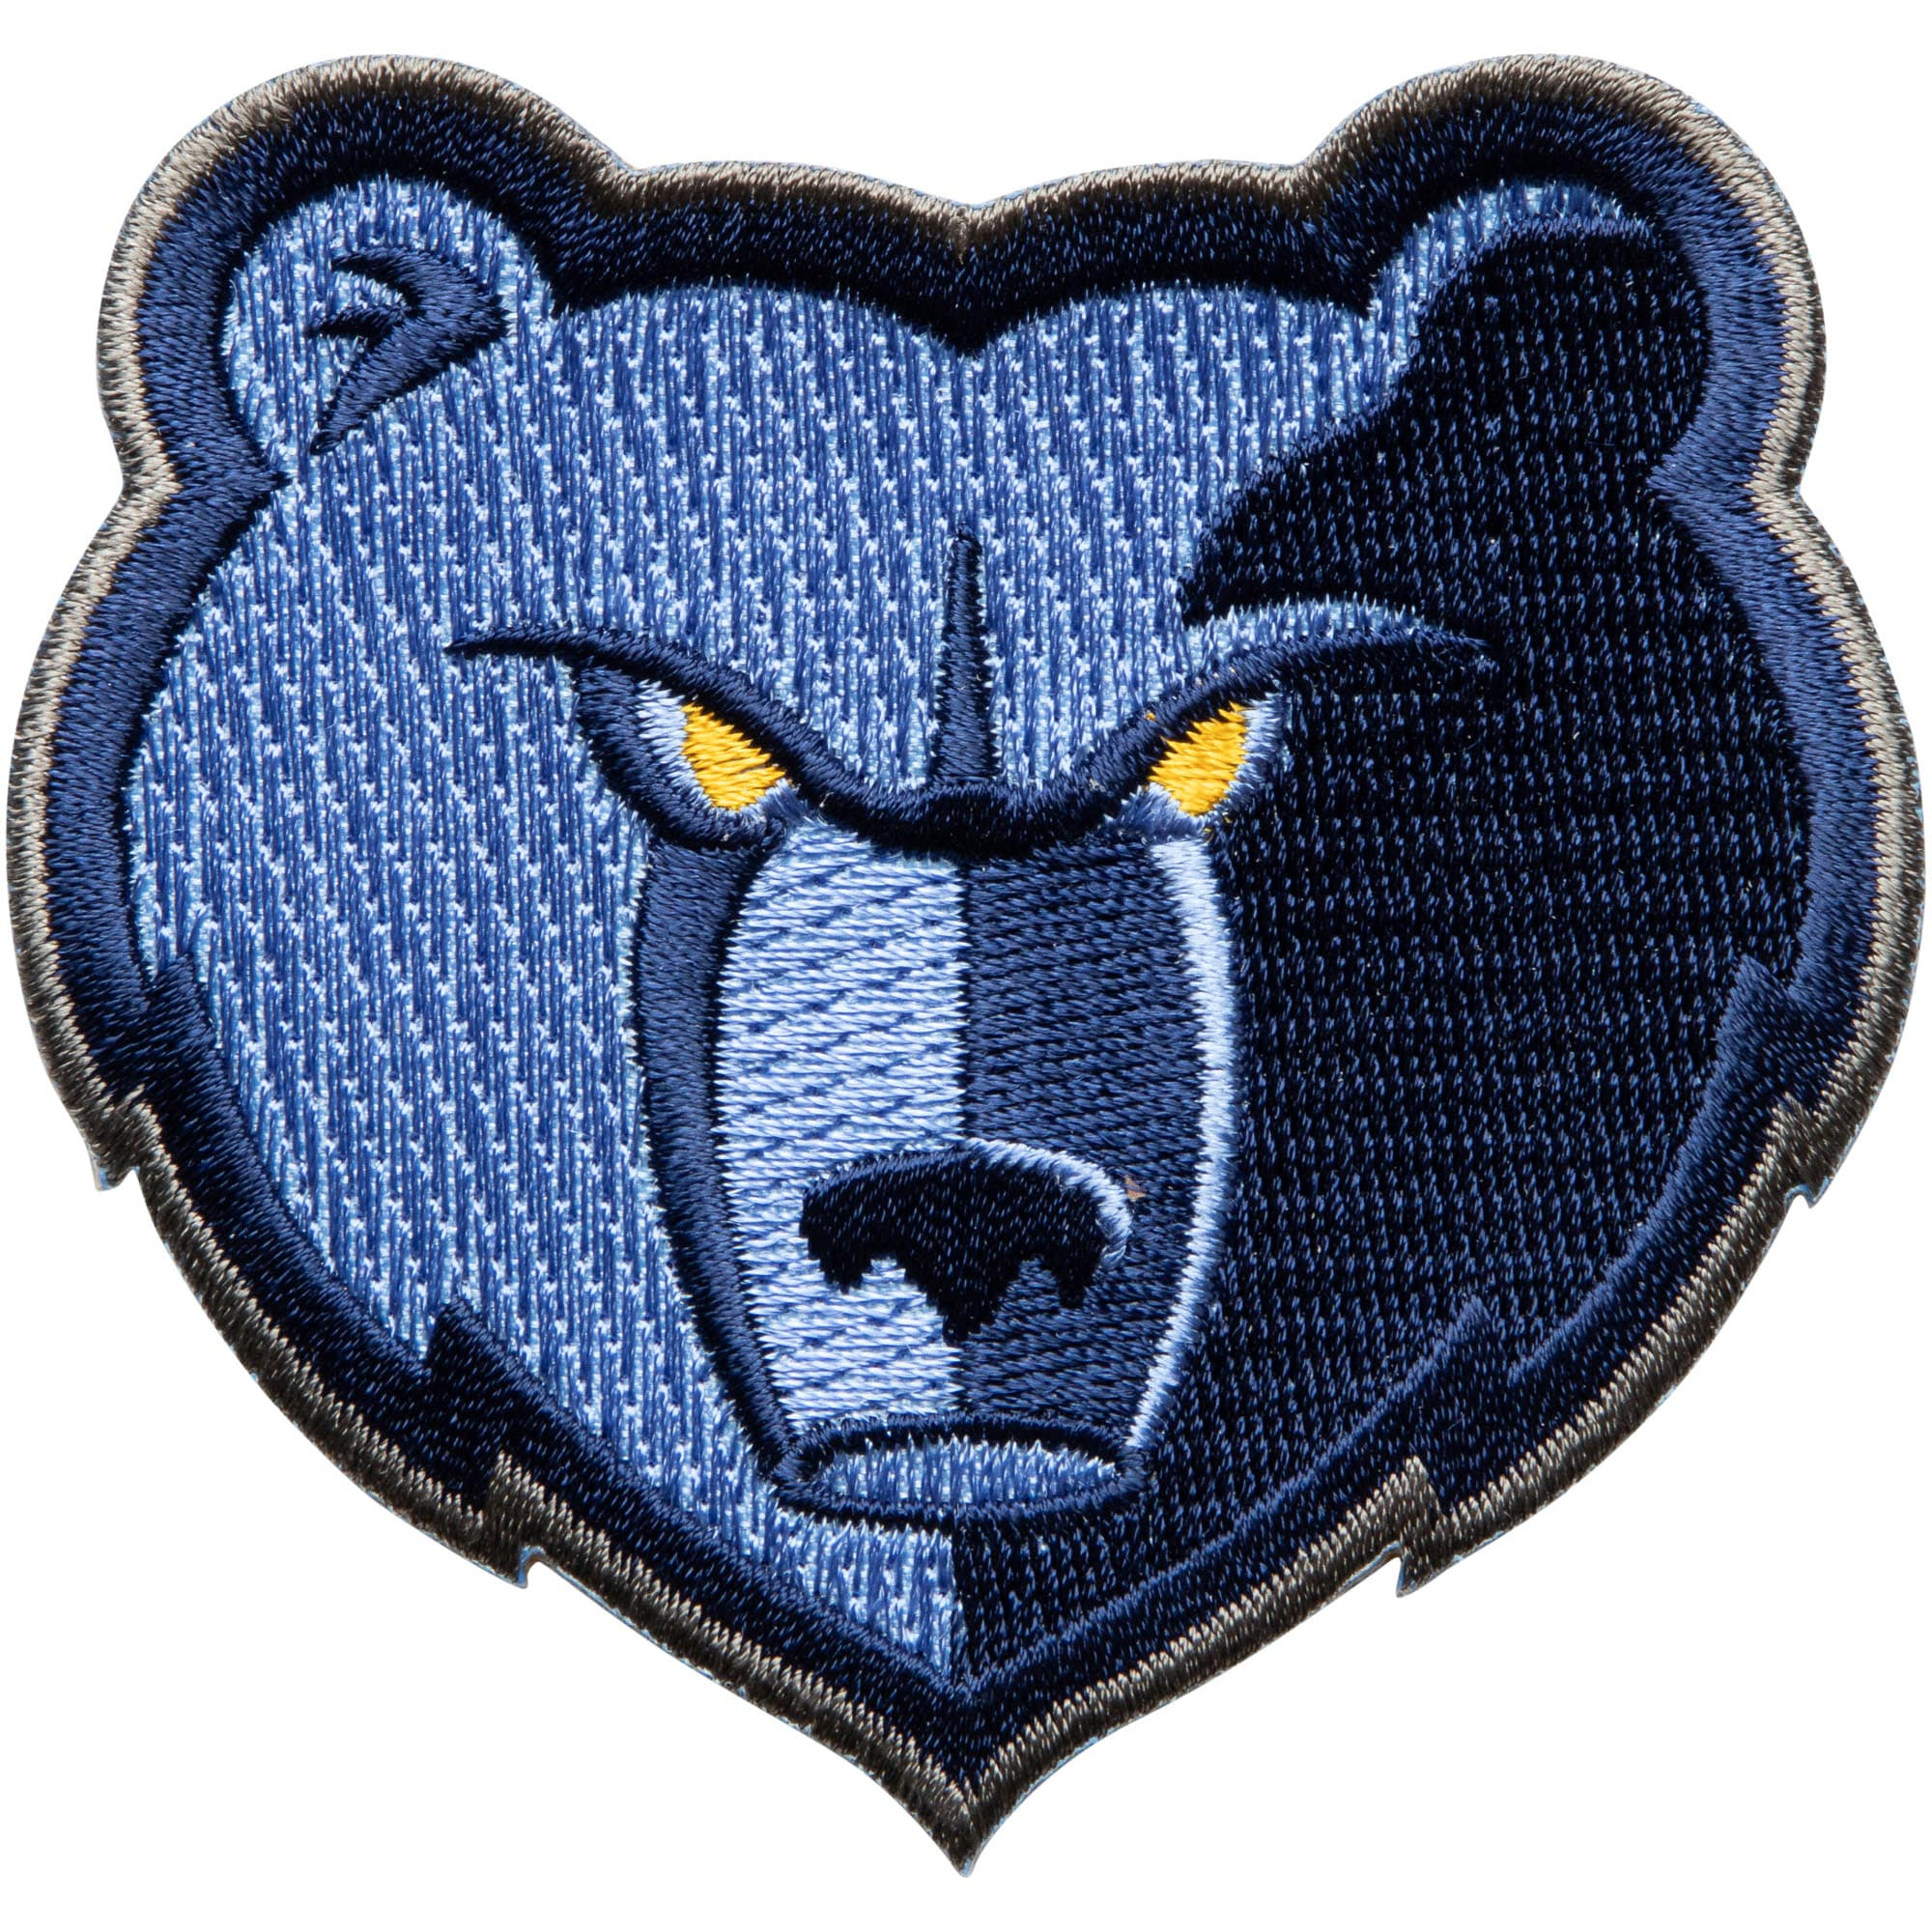 "Memphis Grizzlies 3"" x 2.5"" Team Logo Patch"